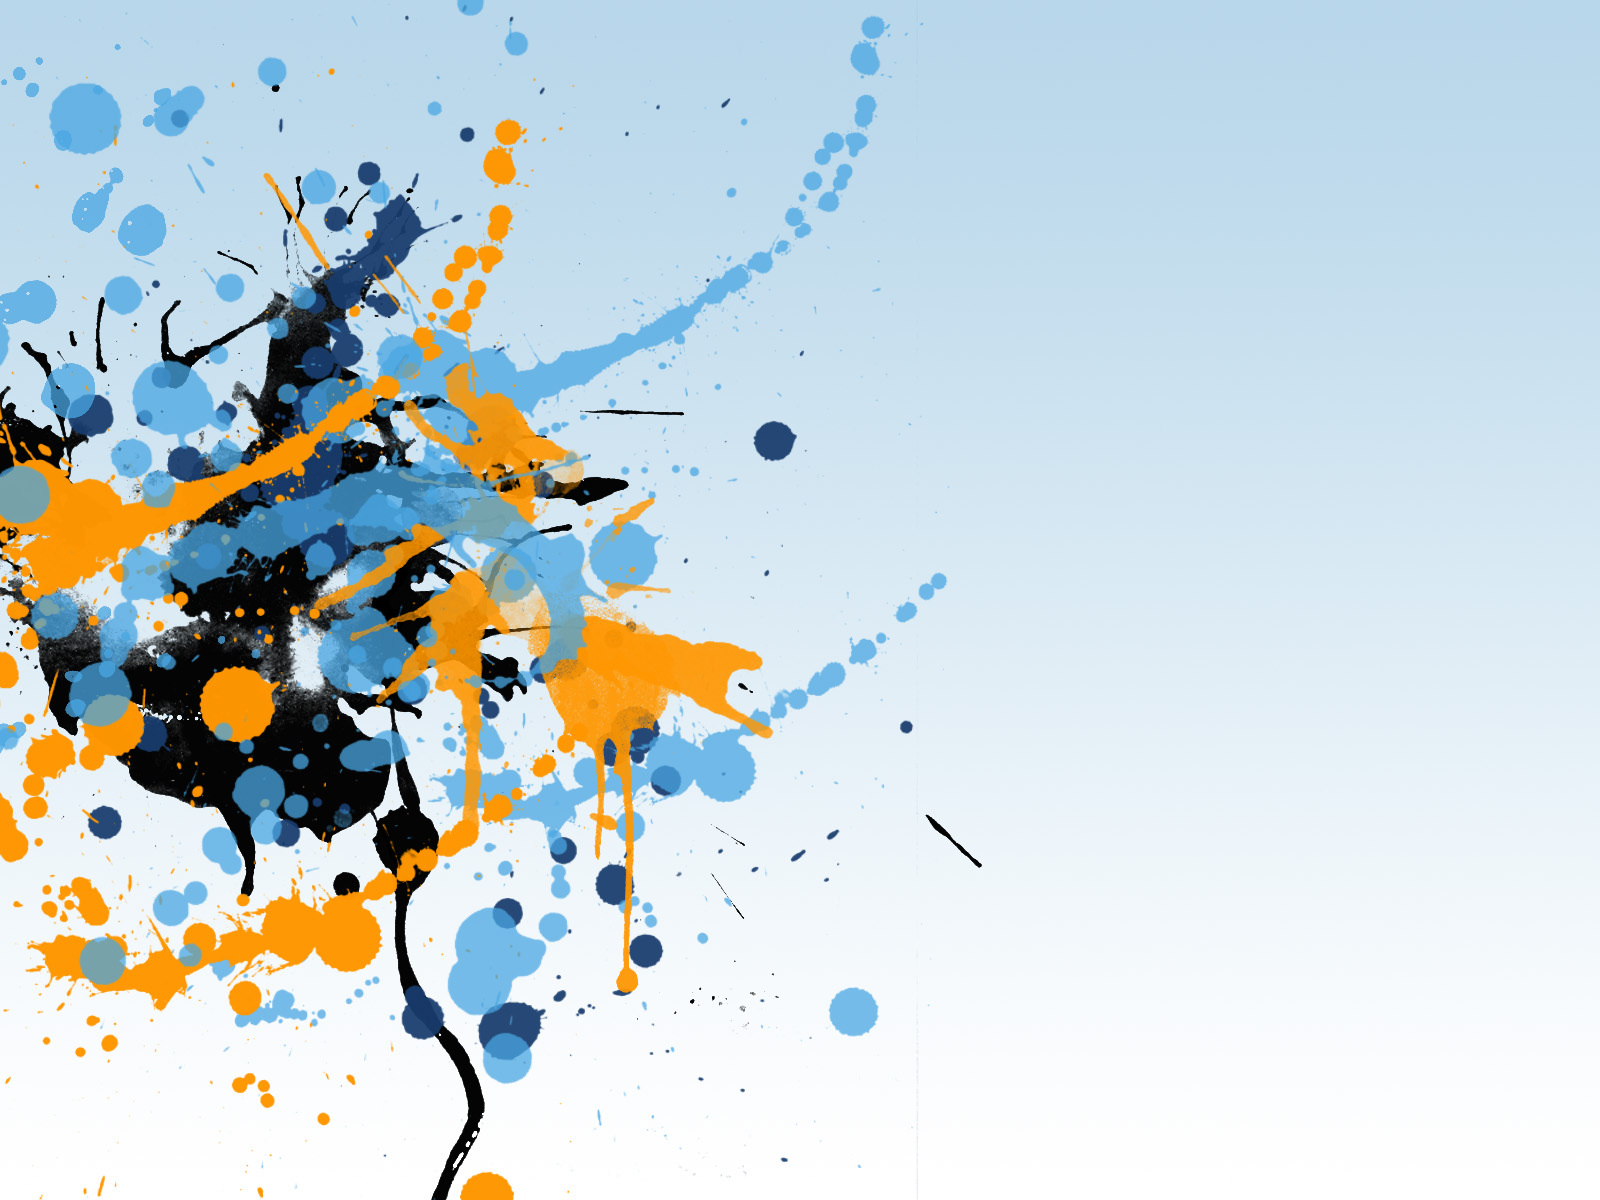 This is the great splatter ink blotch splash Wallpaper, Background, Picture and Layout